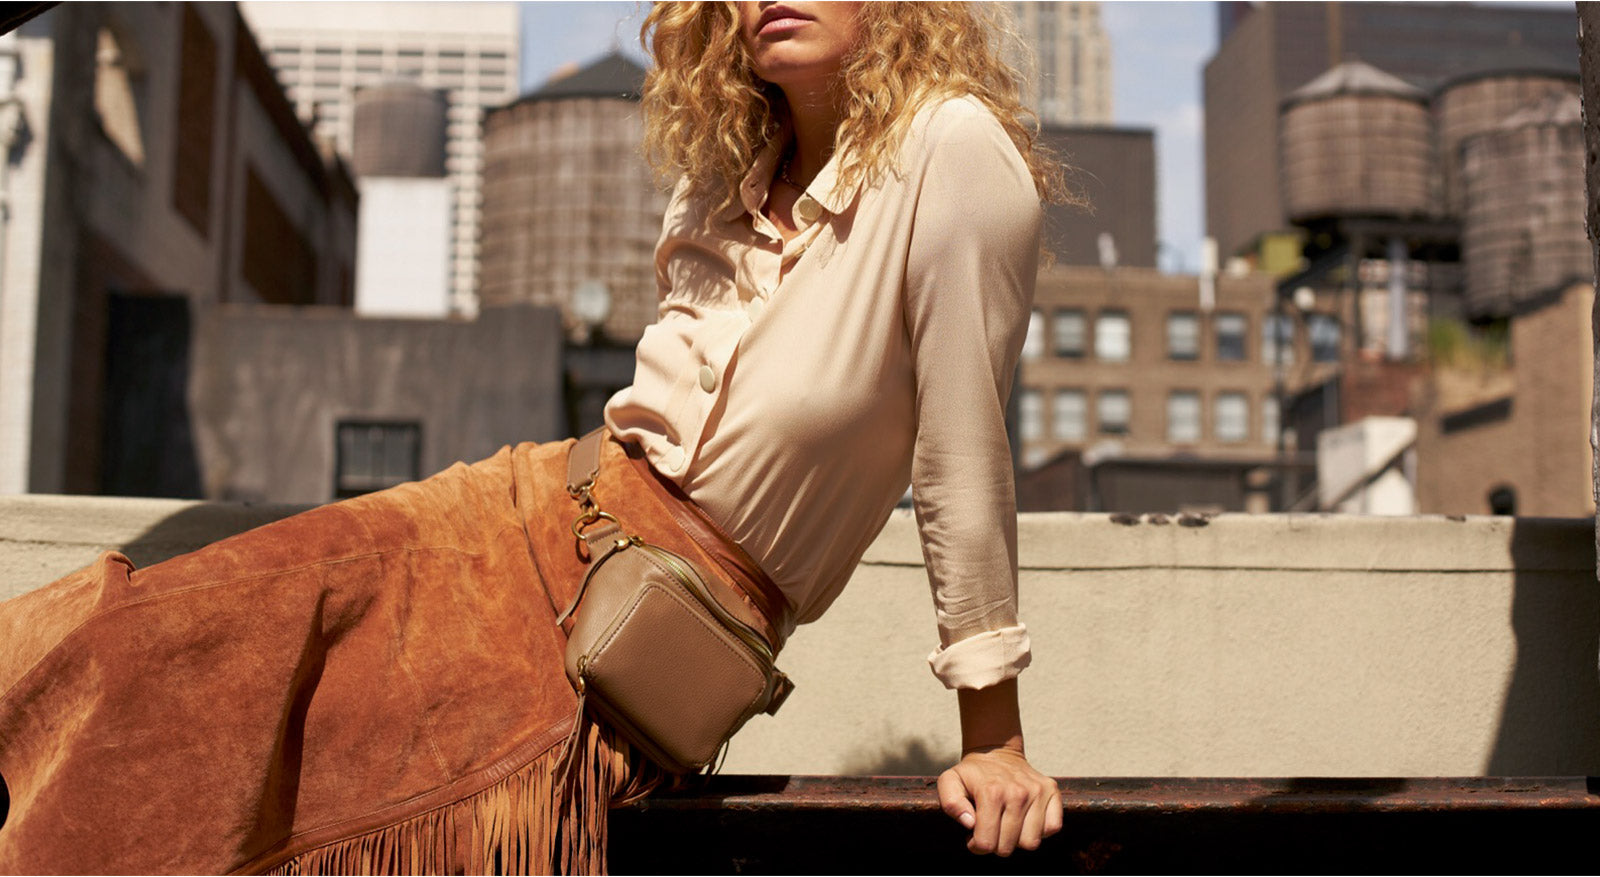 shop this season's color - neutral brown leather